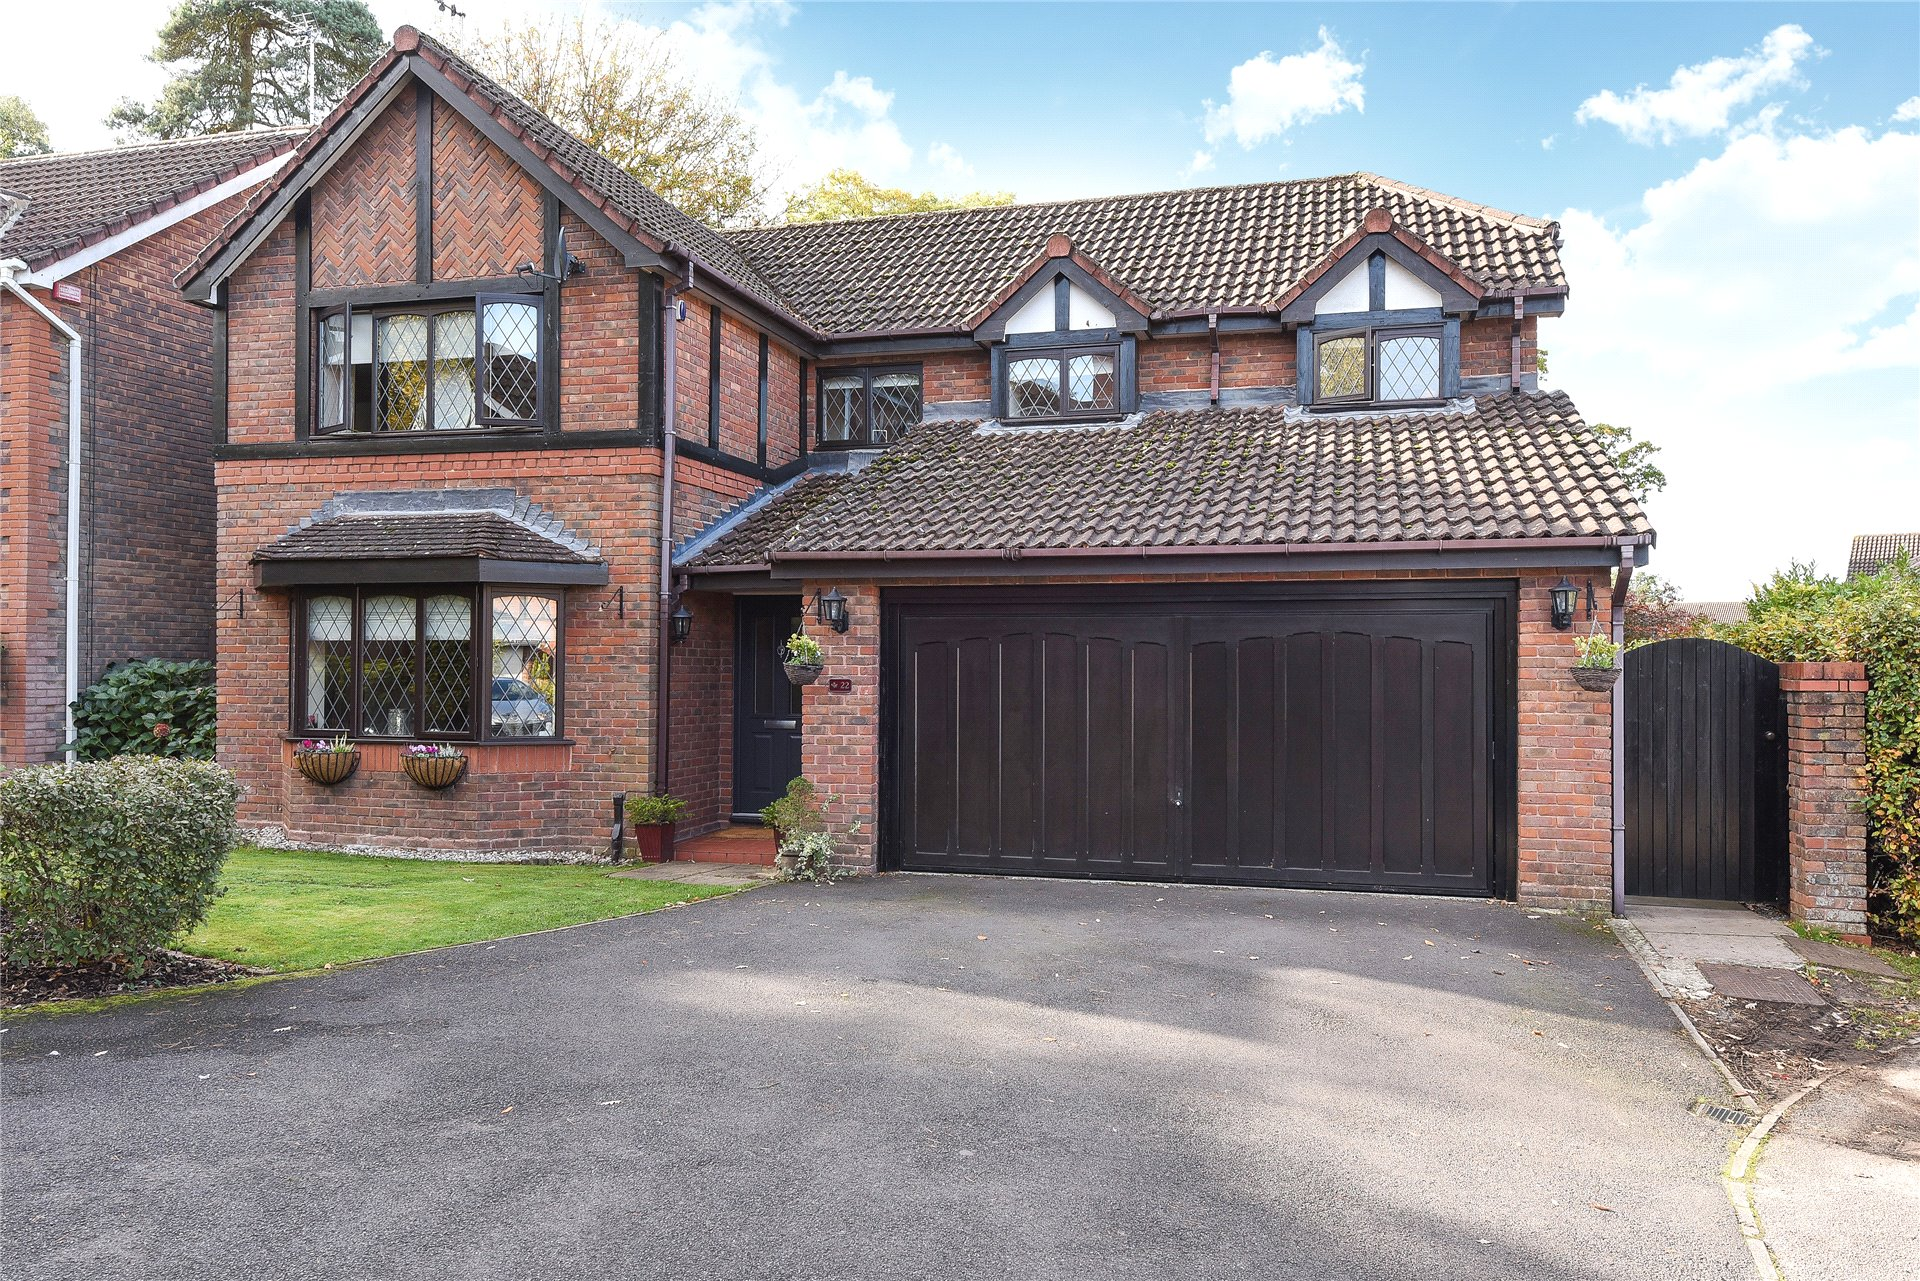 4 Bedrooms Detached House for sale in Saxon Drive, Warfield, Berkshire, RG42